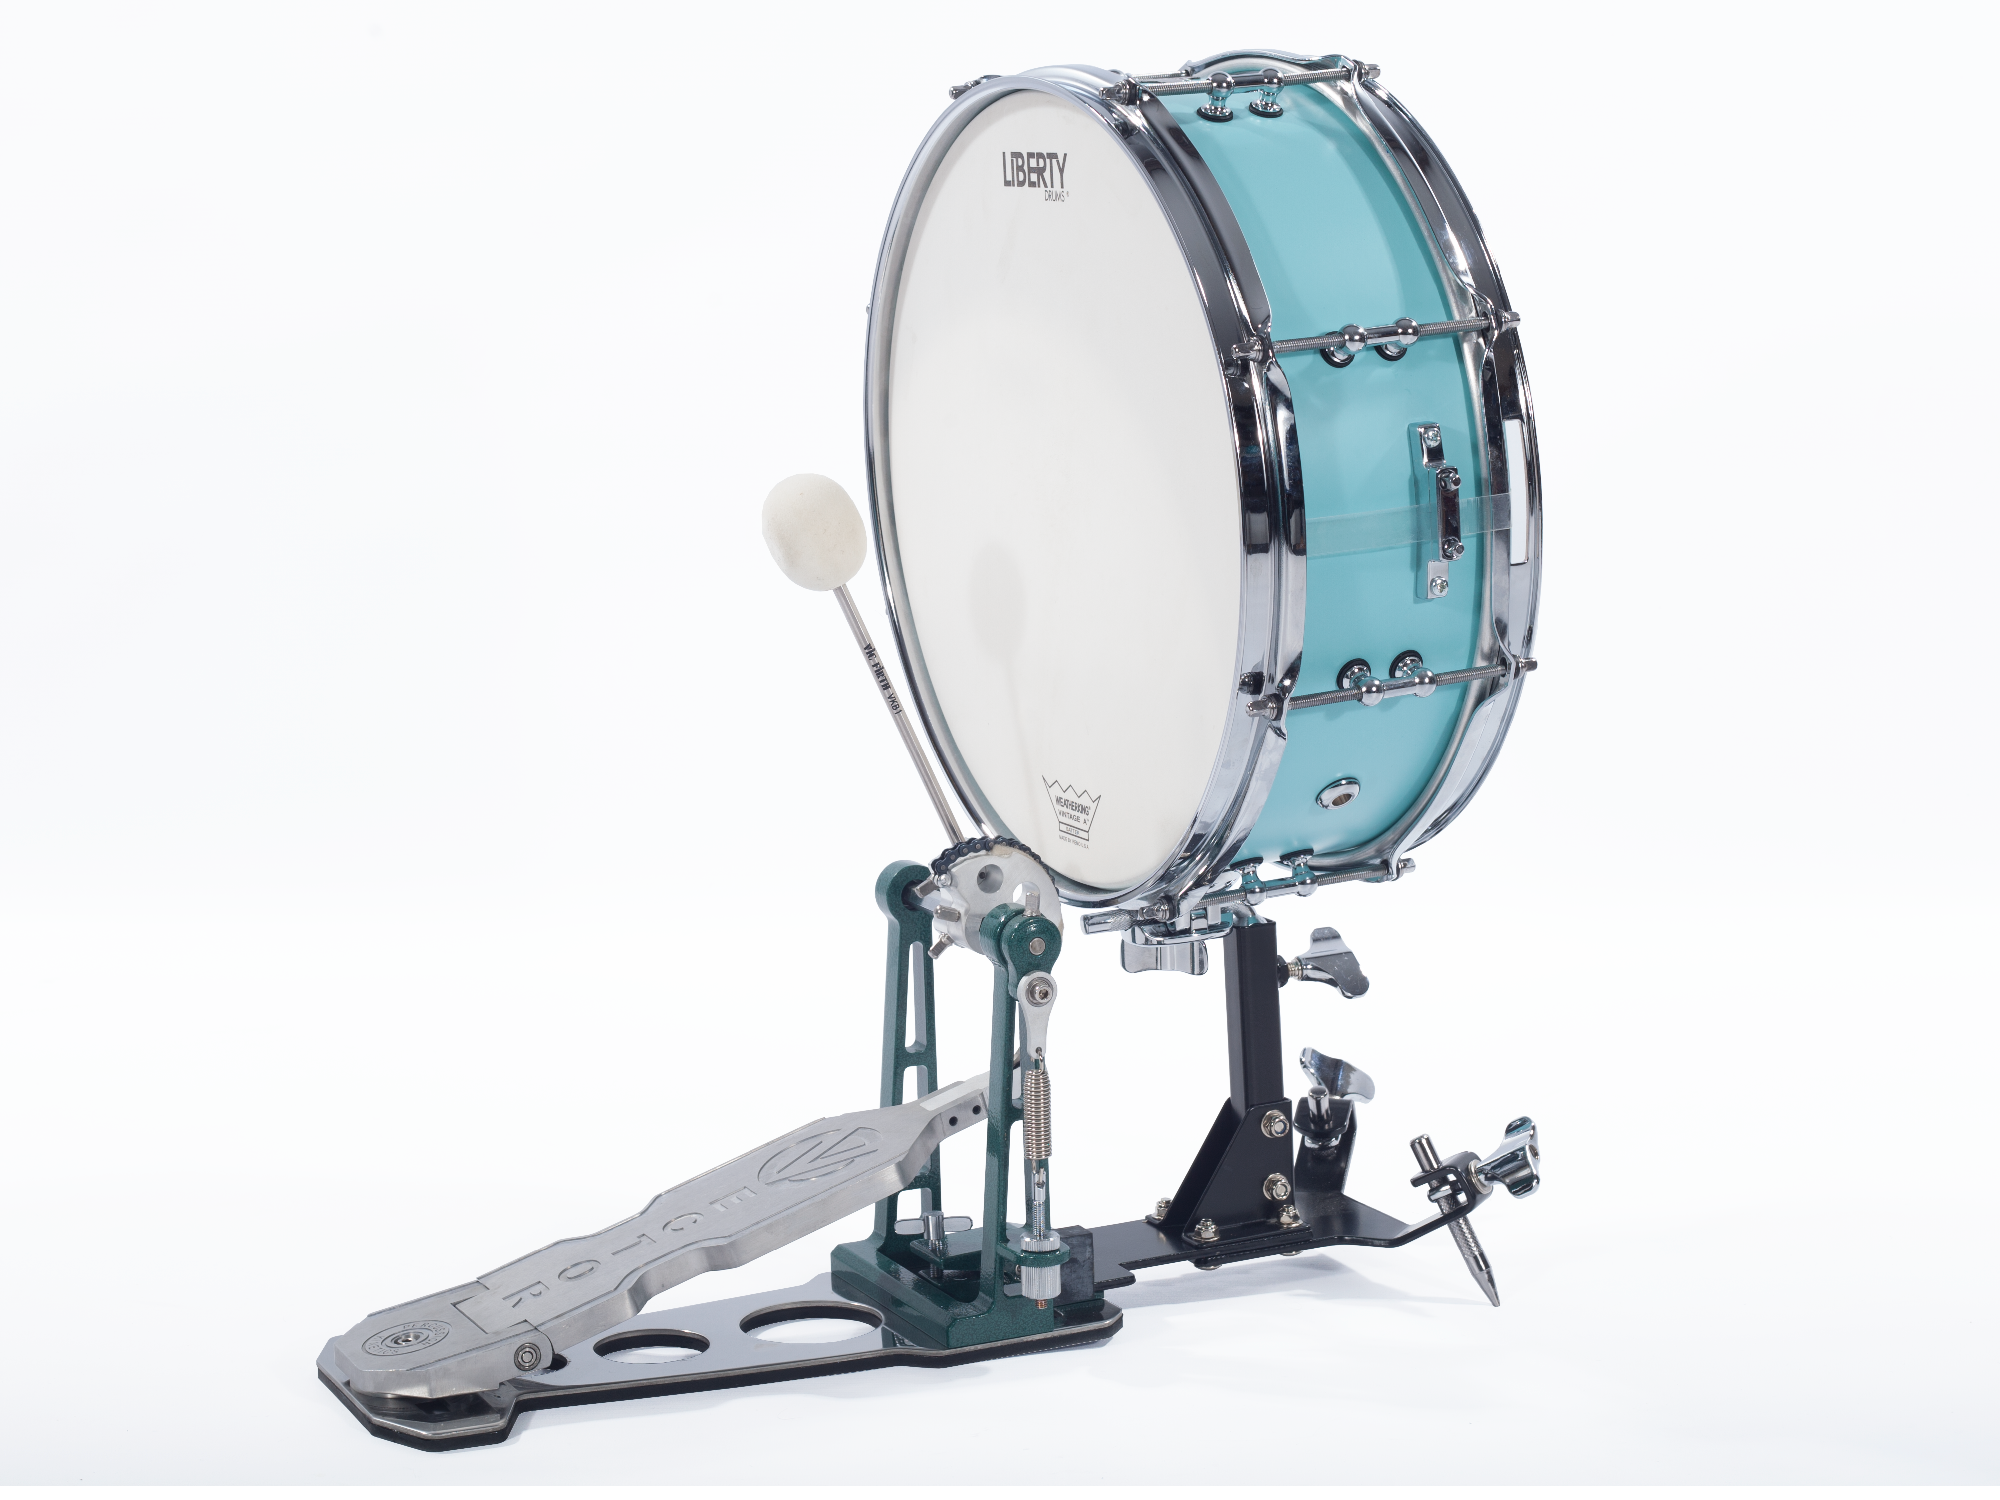 NEW LIBERTY DRUMS KICK SNARE